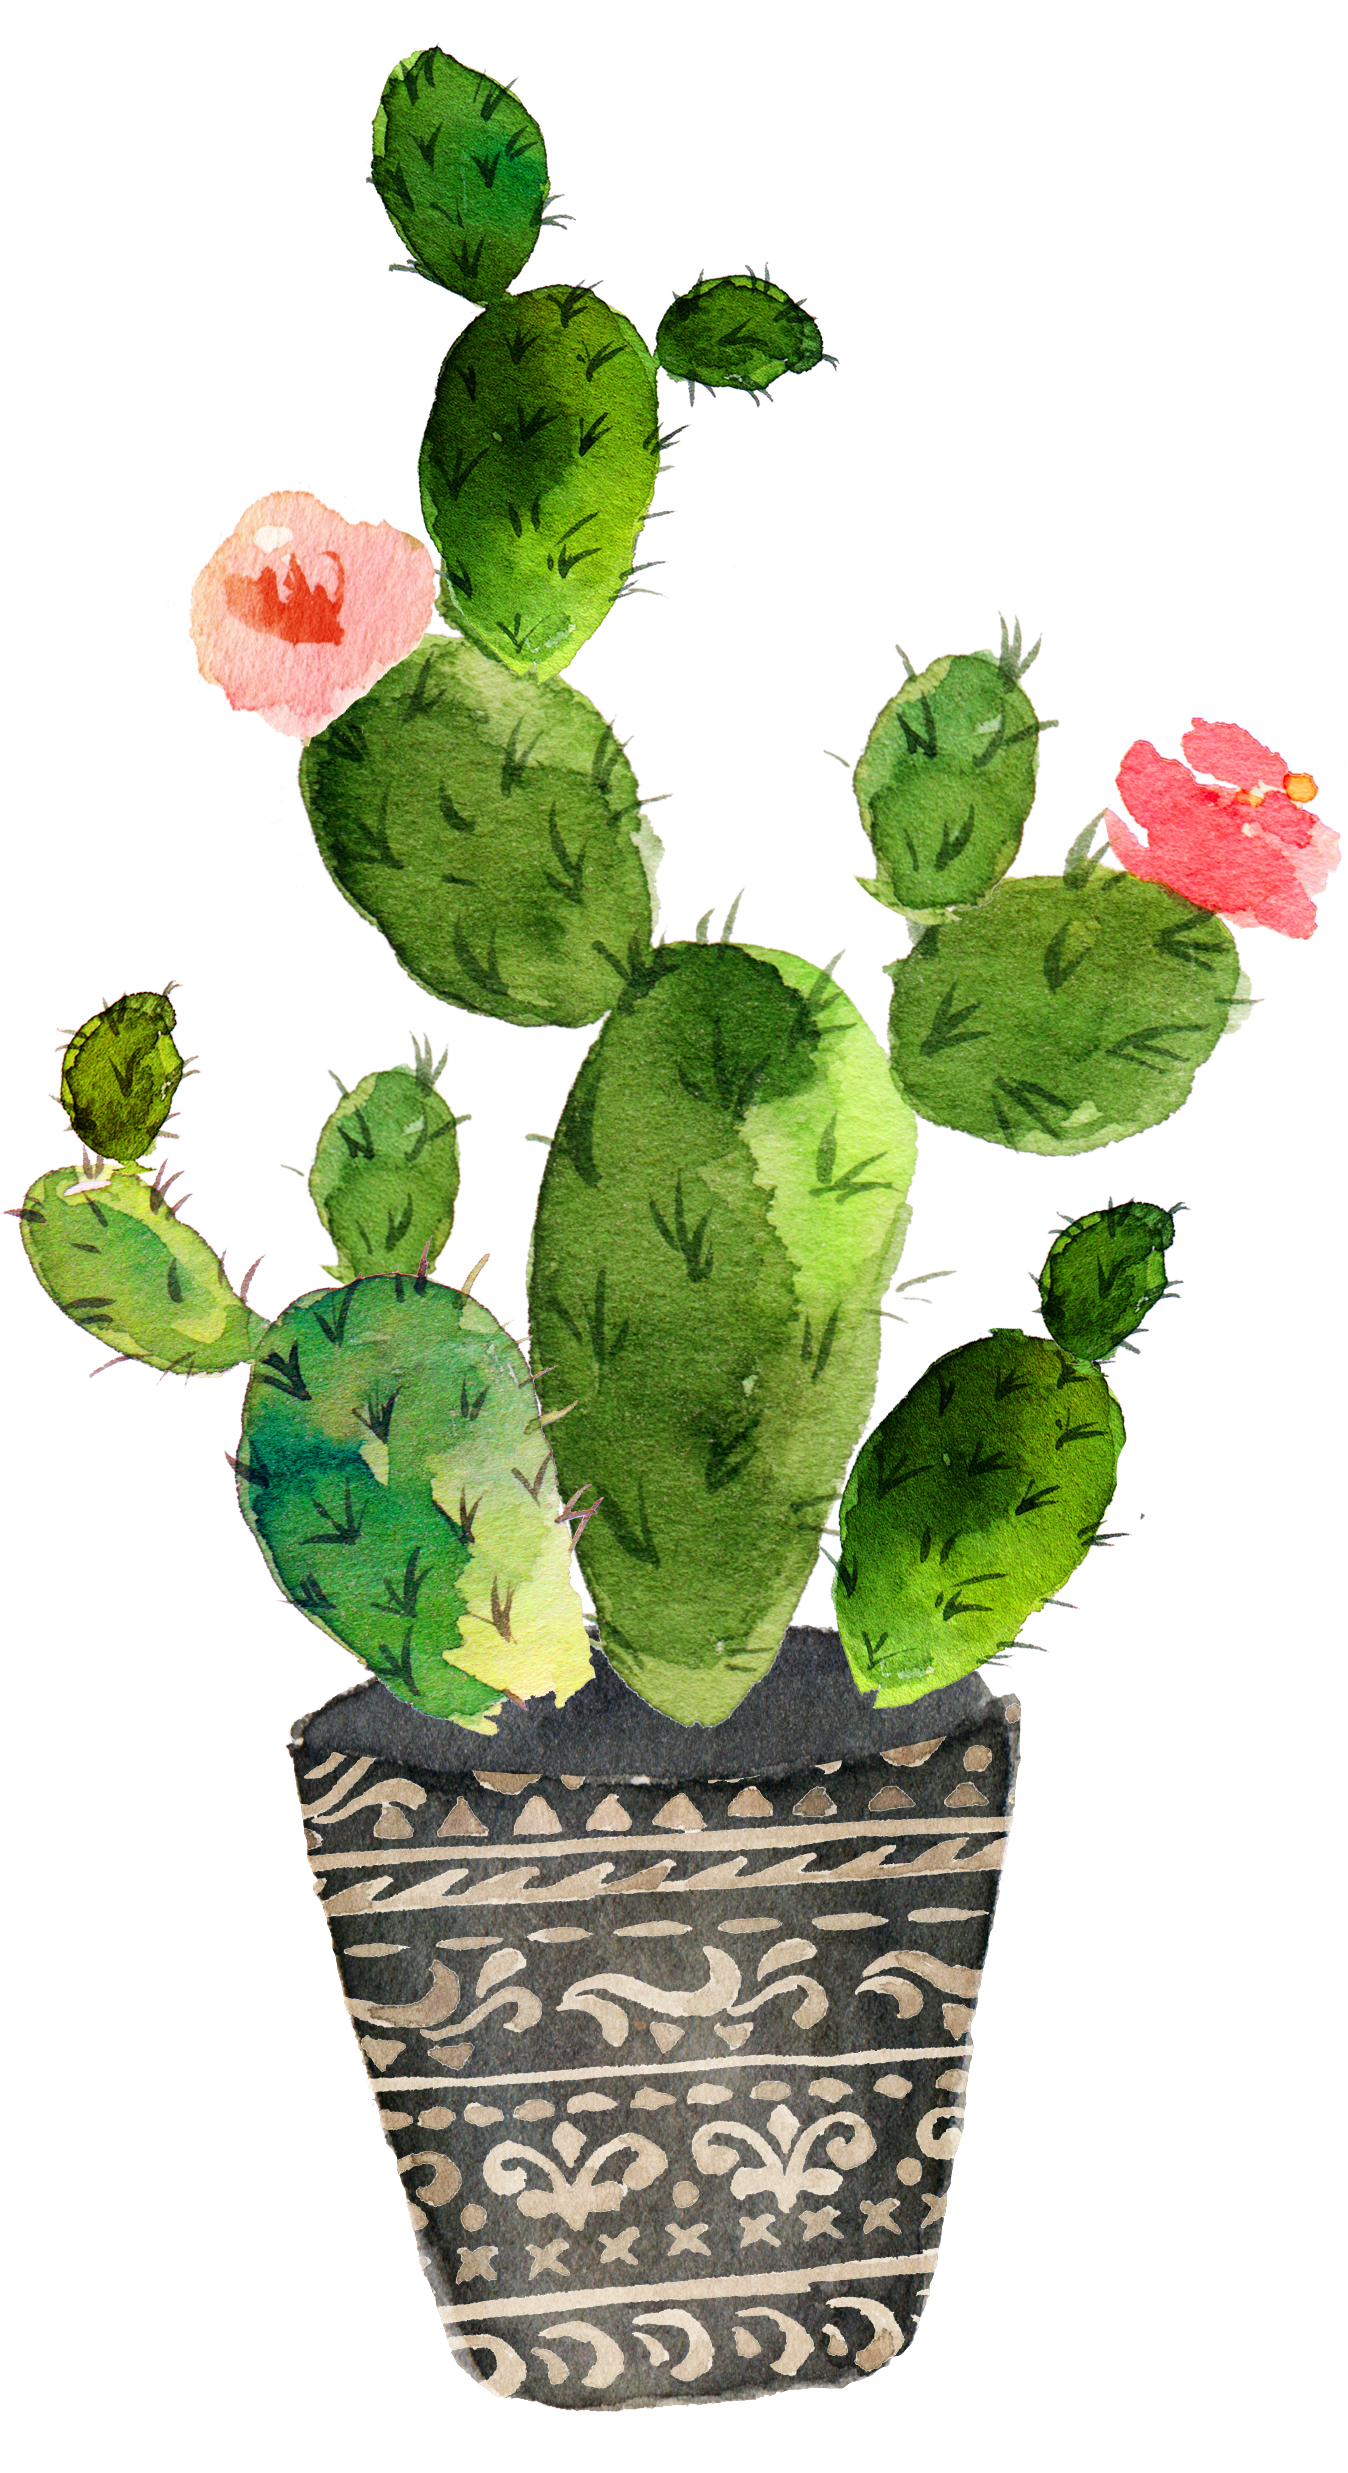 Drawing cactus prickly pear. Cactaceae watercolor painting art